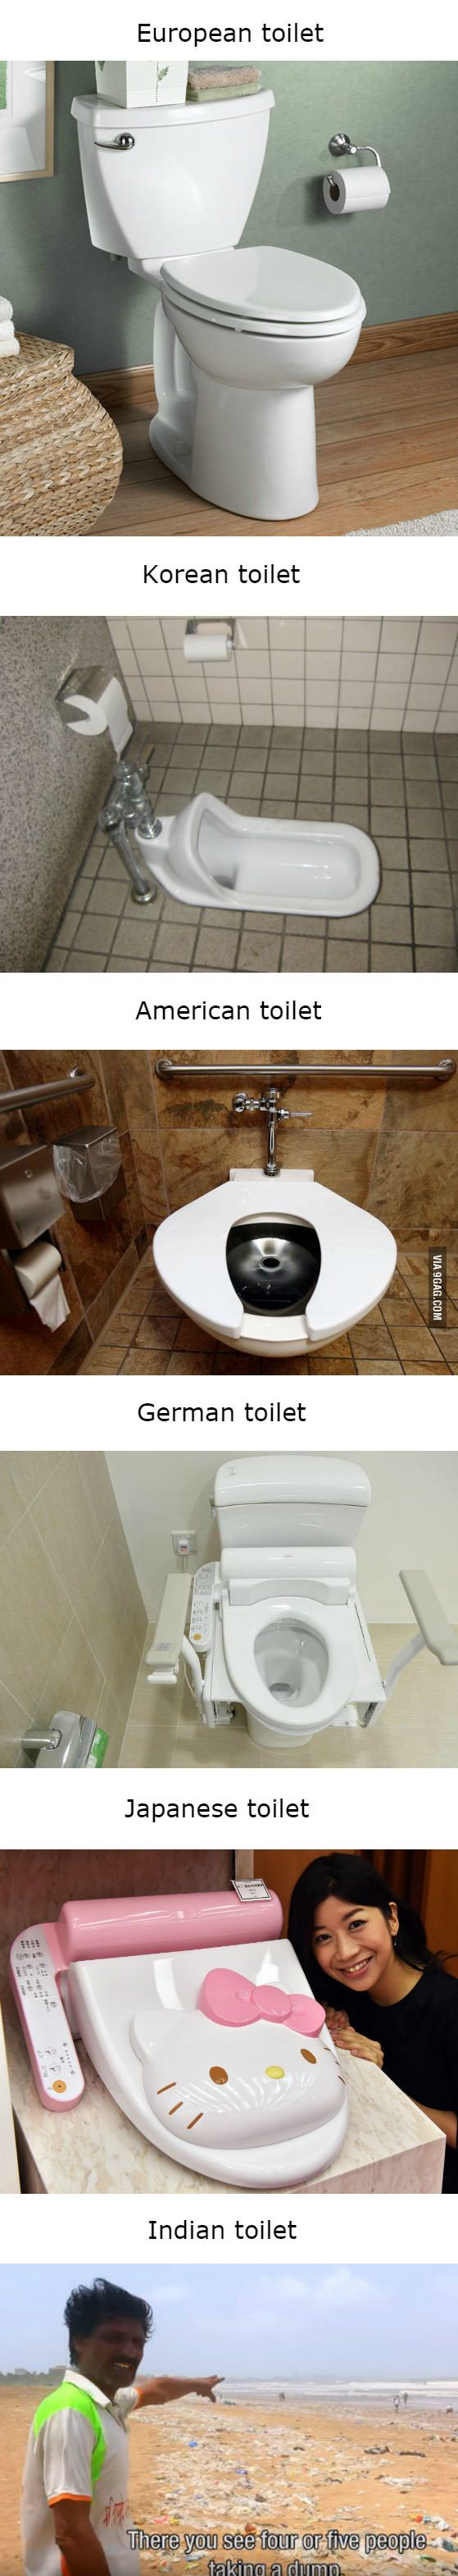 Toilets around the world